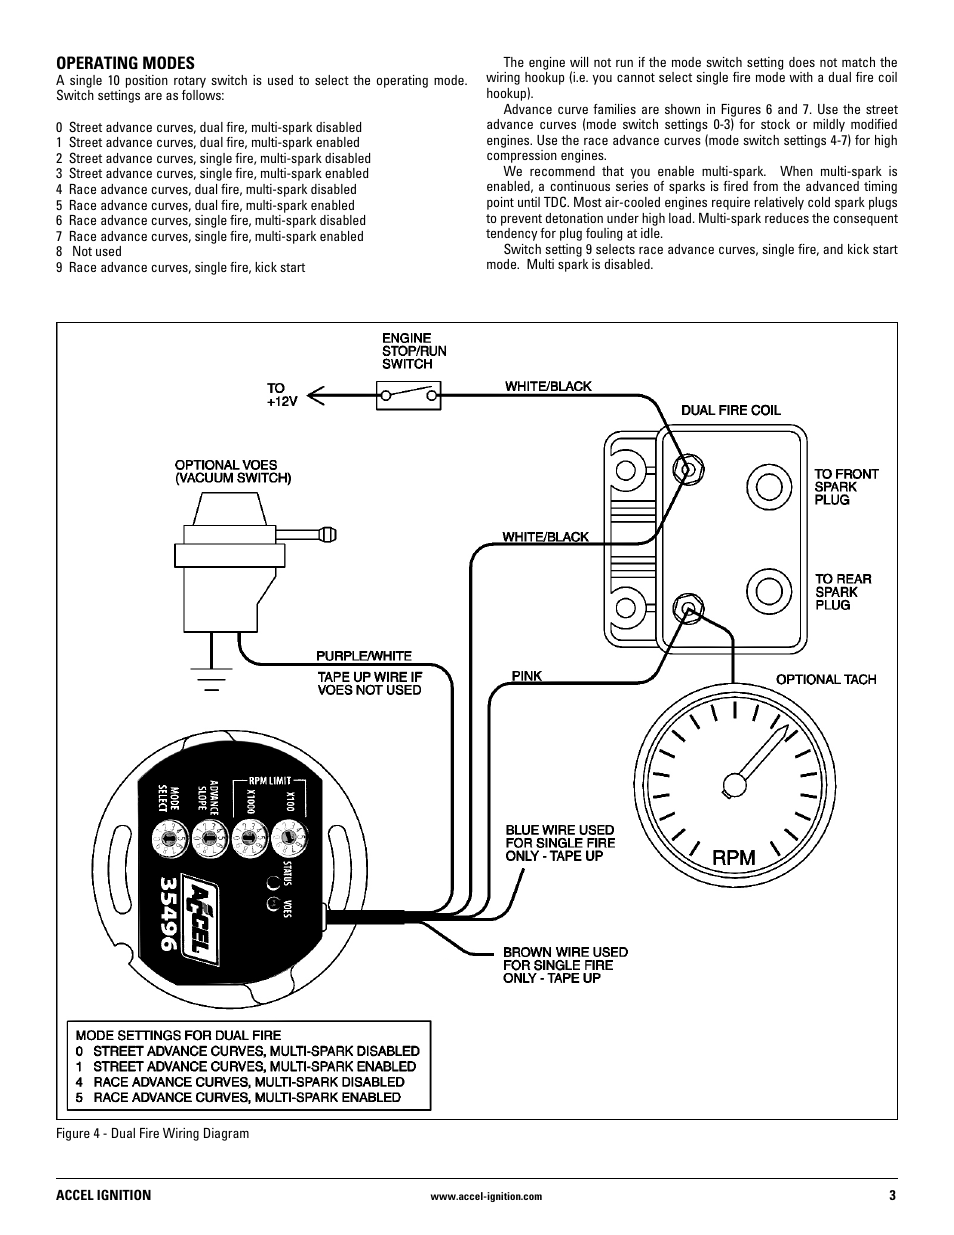 mallory ignition accel ignition 35496 page3?resize\\\\\\\\\\\\\\\=665%2C861 mallory unilite wiring diagram tamahuproject org mallory unilite wiring schematic at sewacar.co